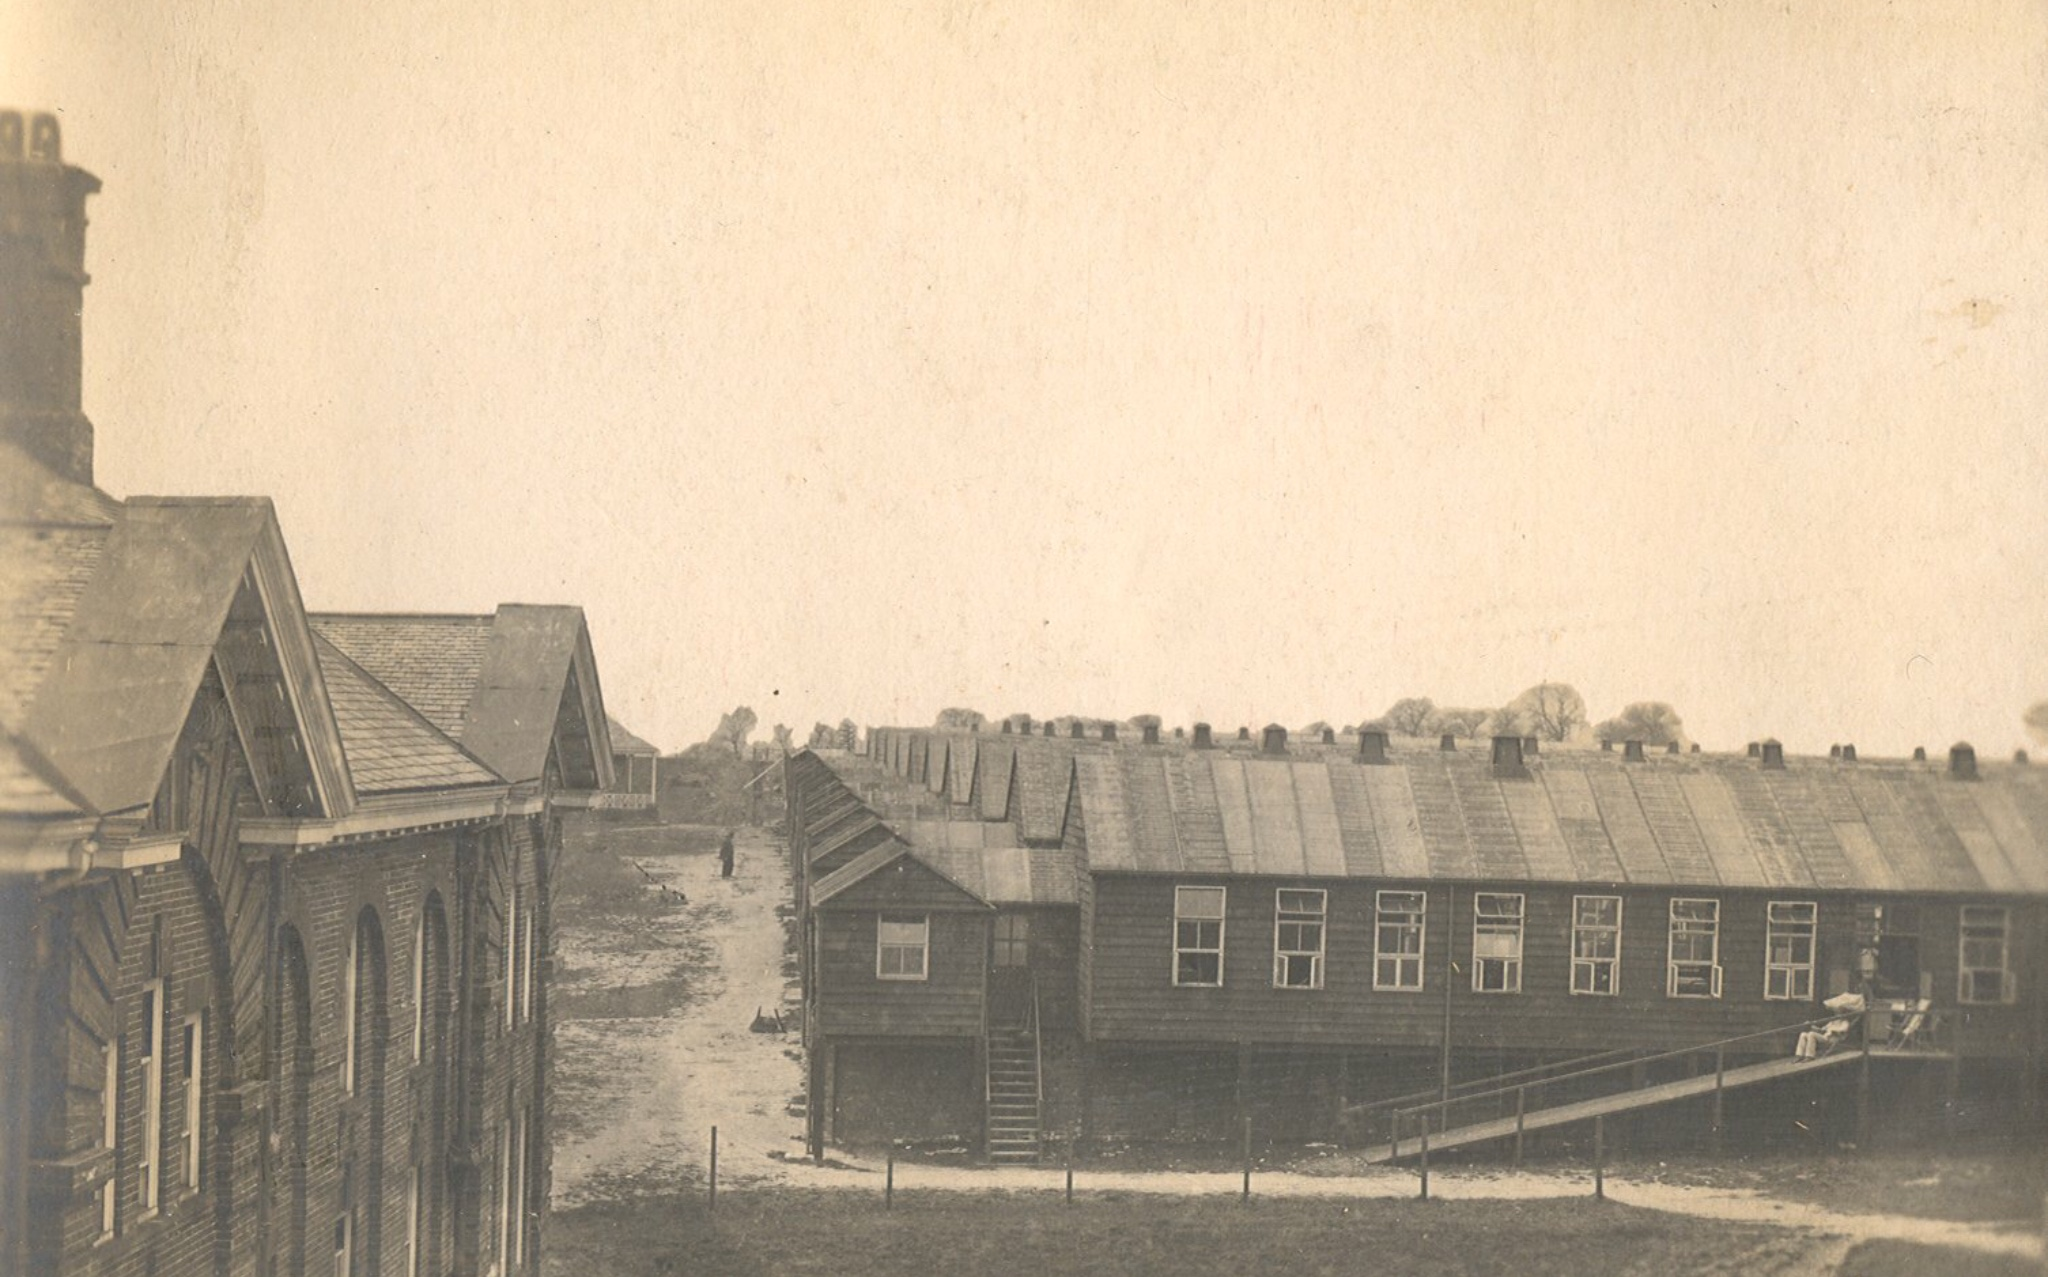 Hospital extension huts on playing fields, c1917